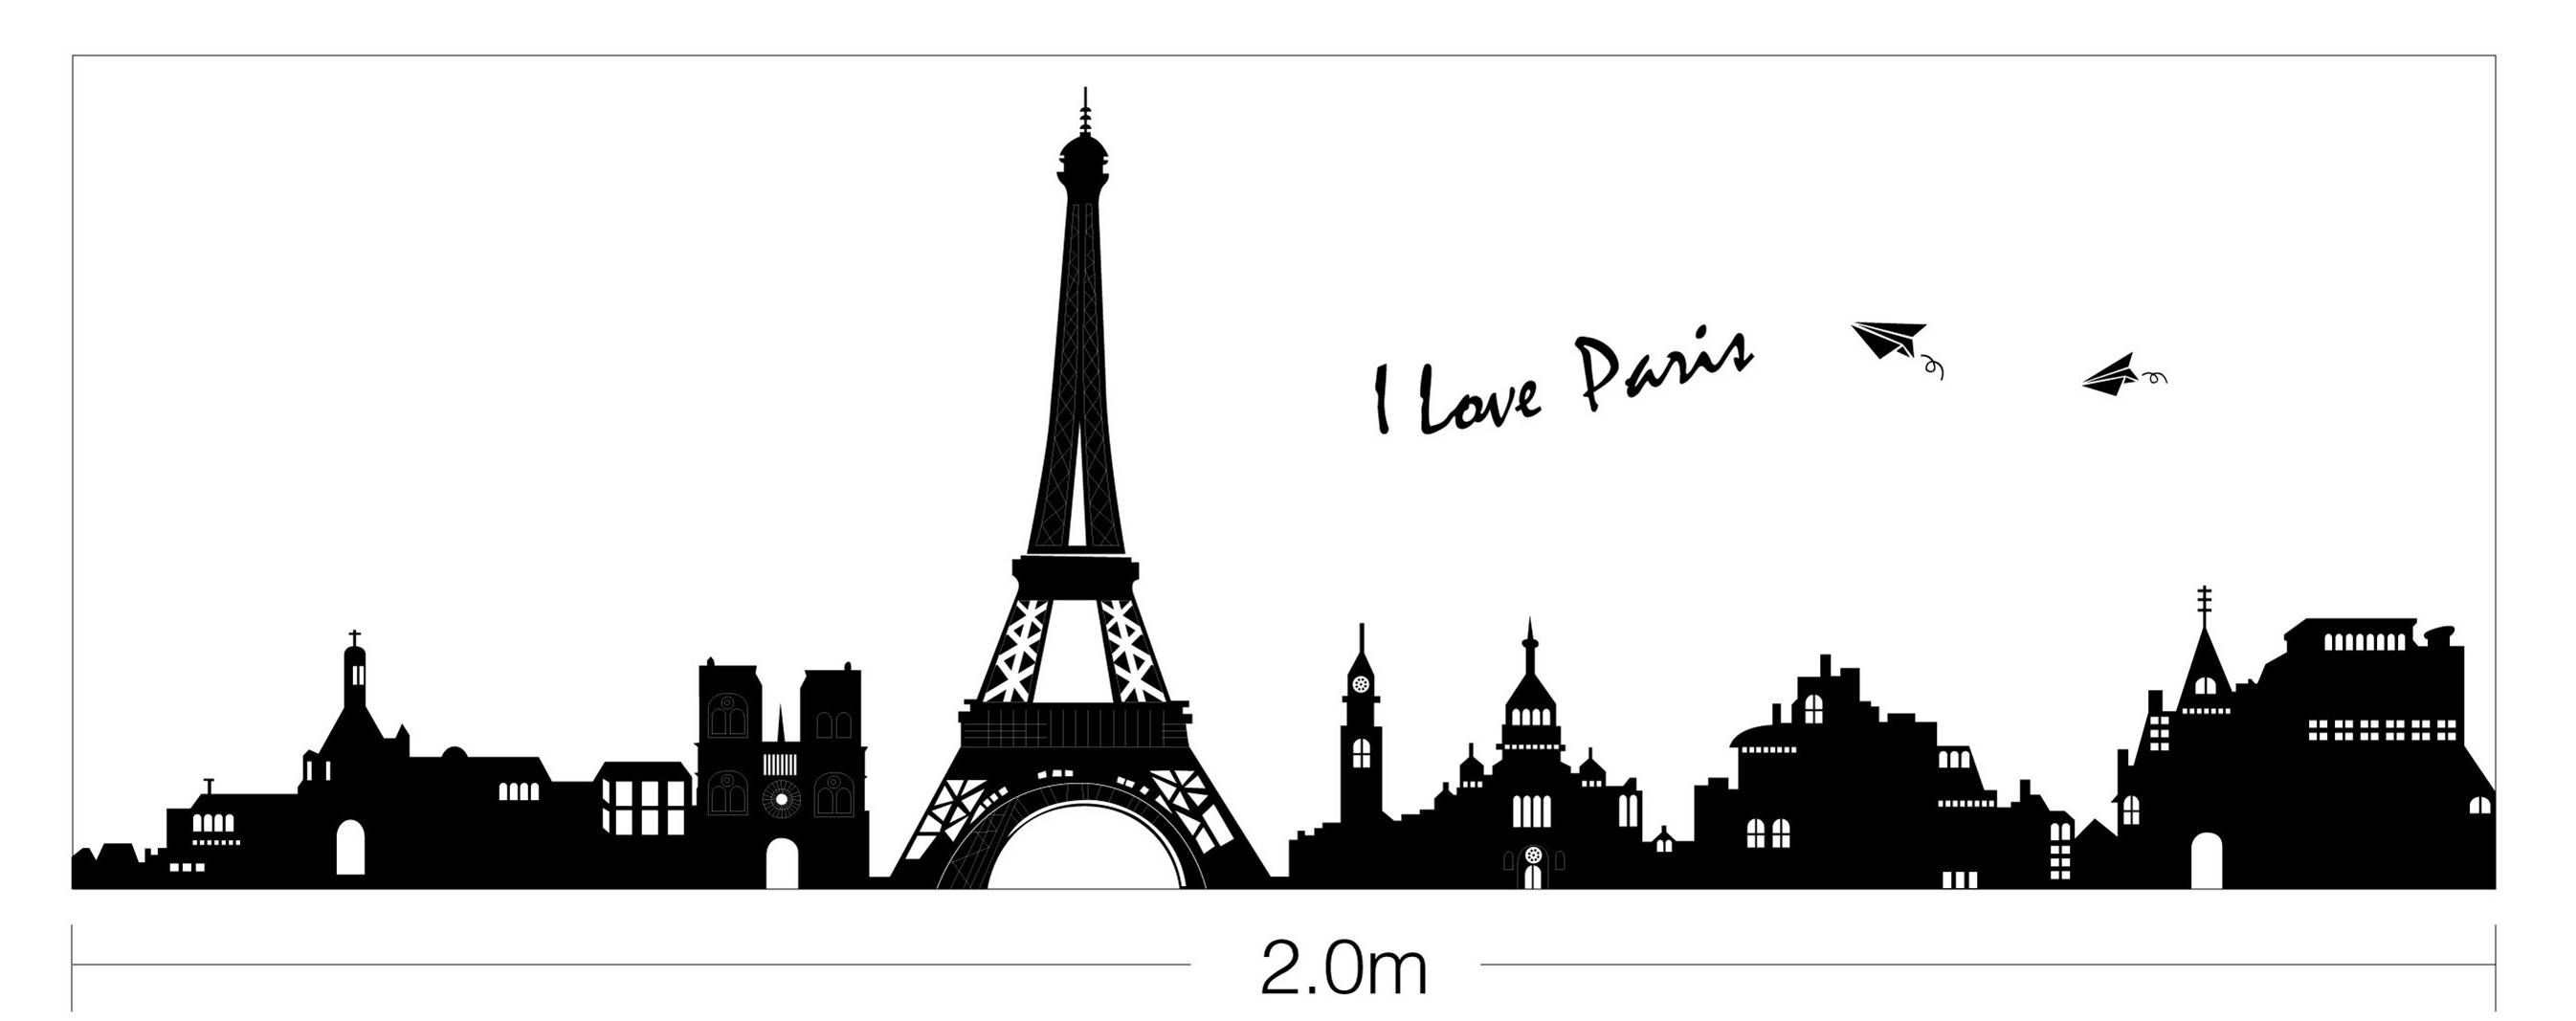 I Love Paris La Tour Eiffel Wall Stickers Removable Home Decal Art With Regard To Recent Paris Stickers (View 8 of 15)